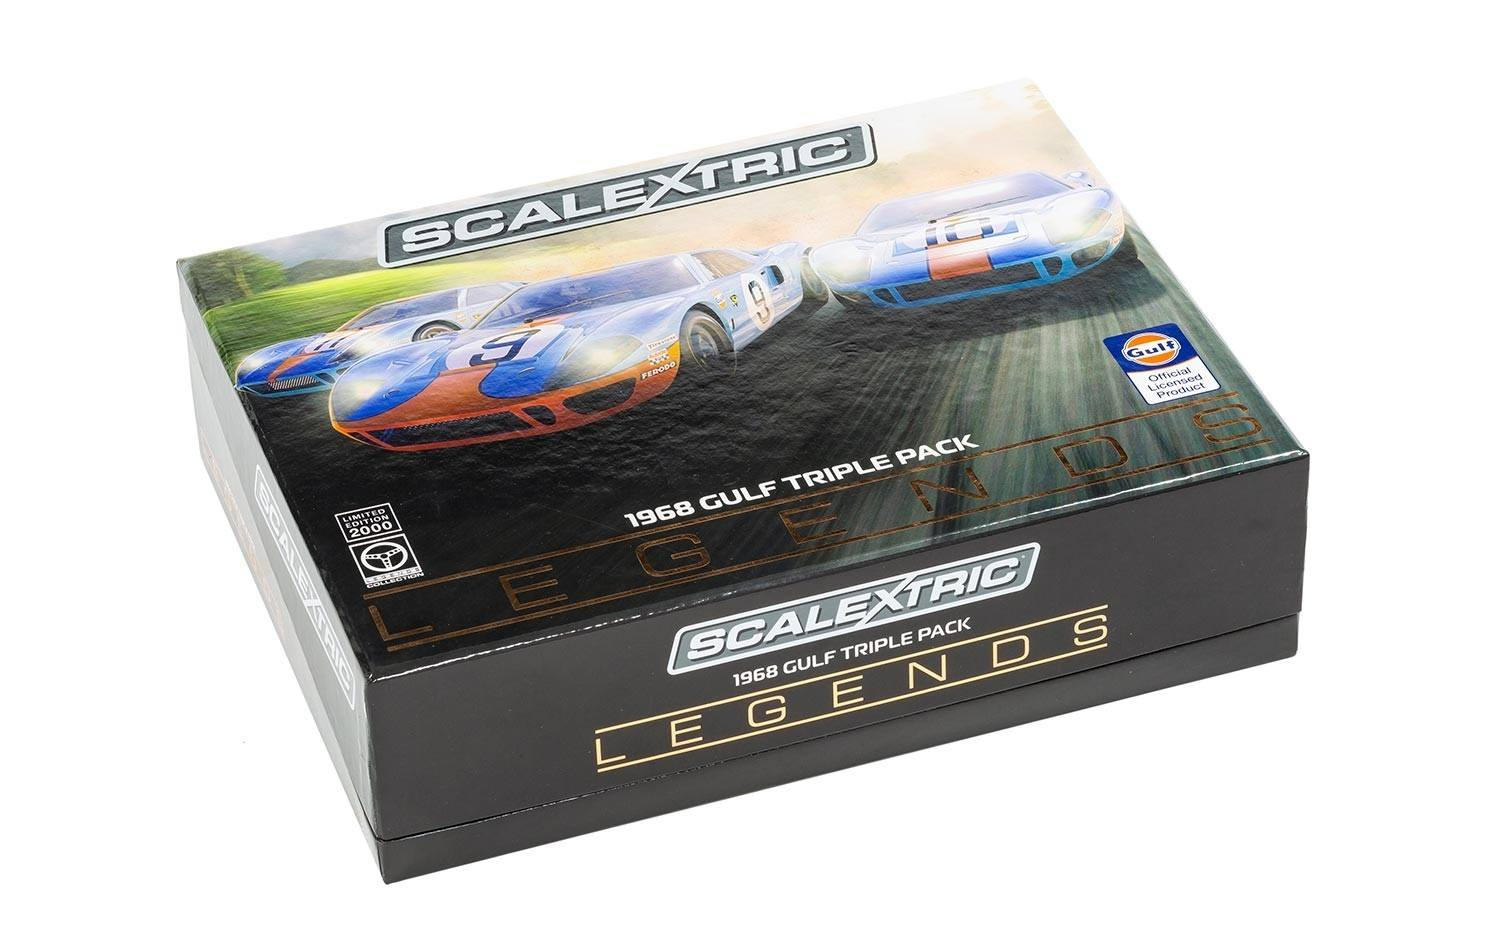 Scalextric Le coffret Legends Ford GT40 LeMans 1968 - Gulf Triple Pack - Limited Edition